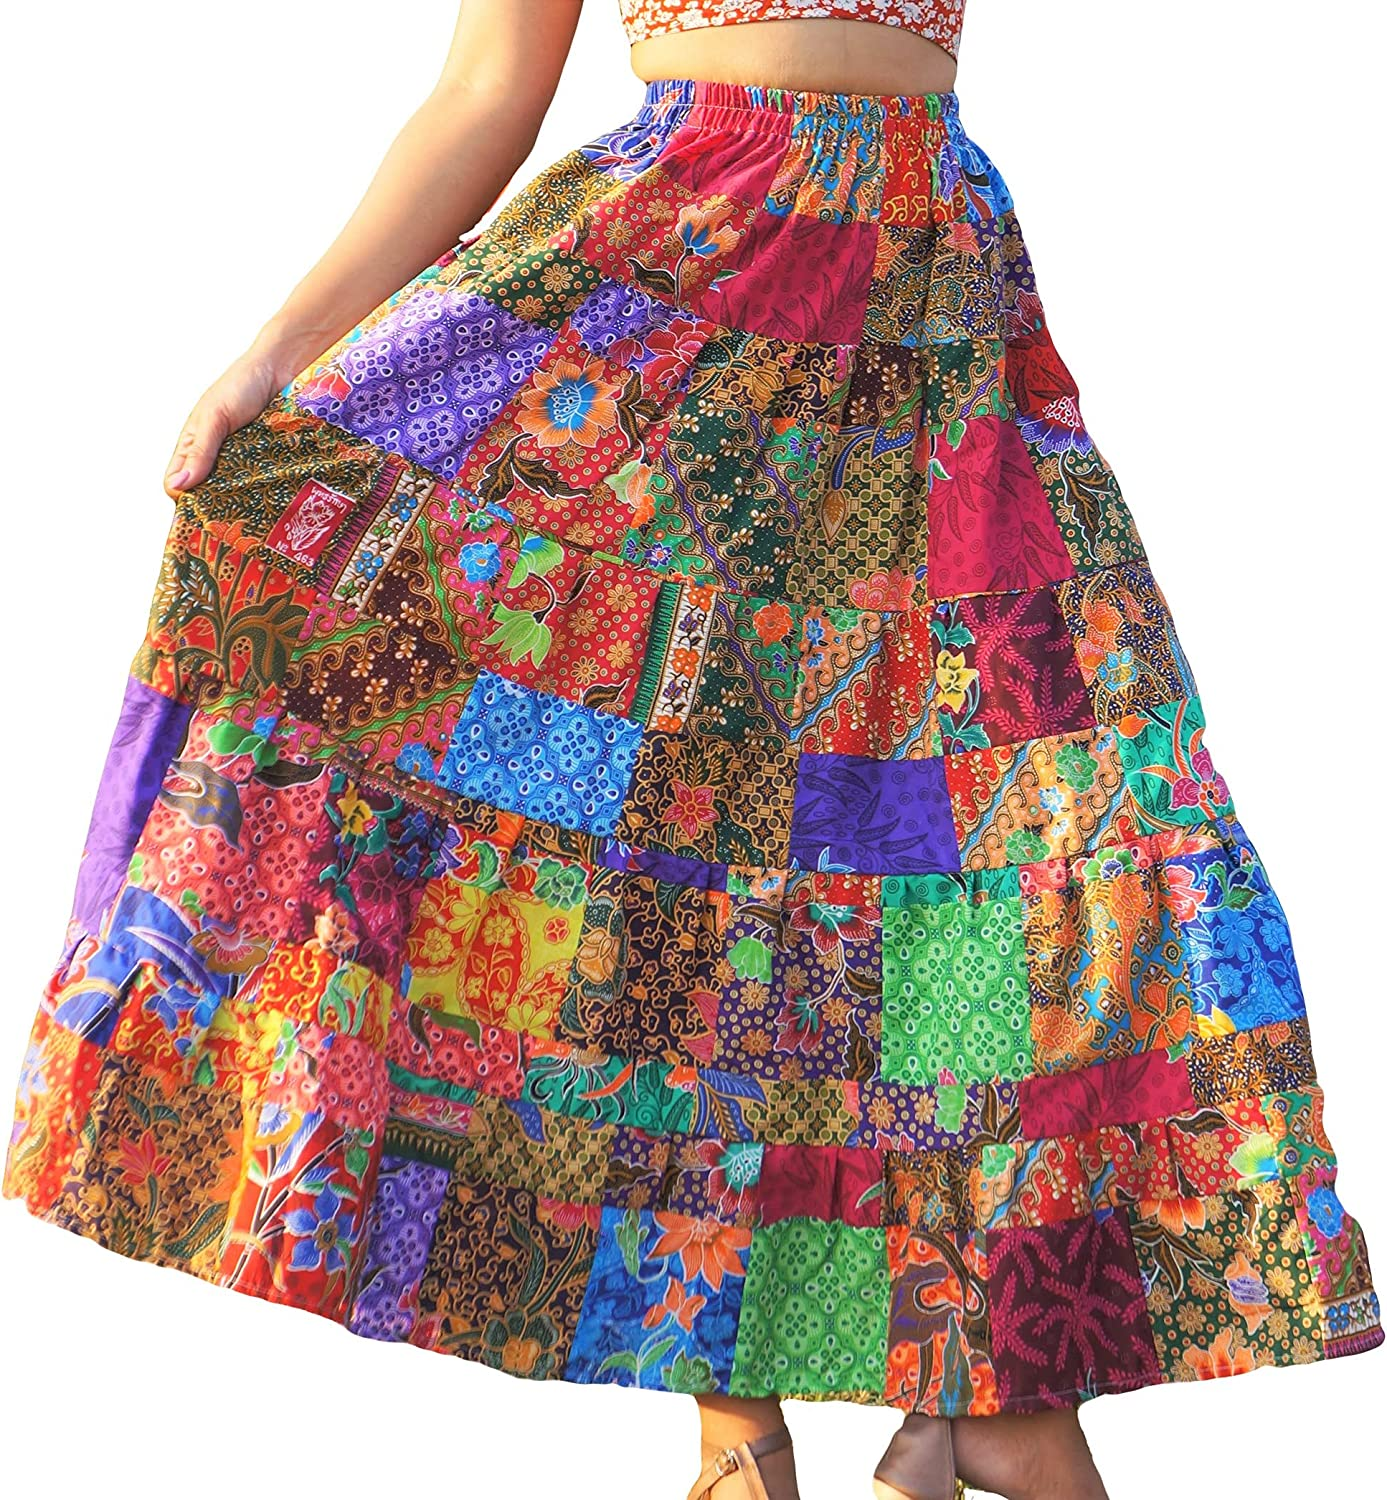 ThaiOnline4u Cotton Patchwork Skirt Boho Hippie Style Flared Flowy Relaxed Summer Multicolored